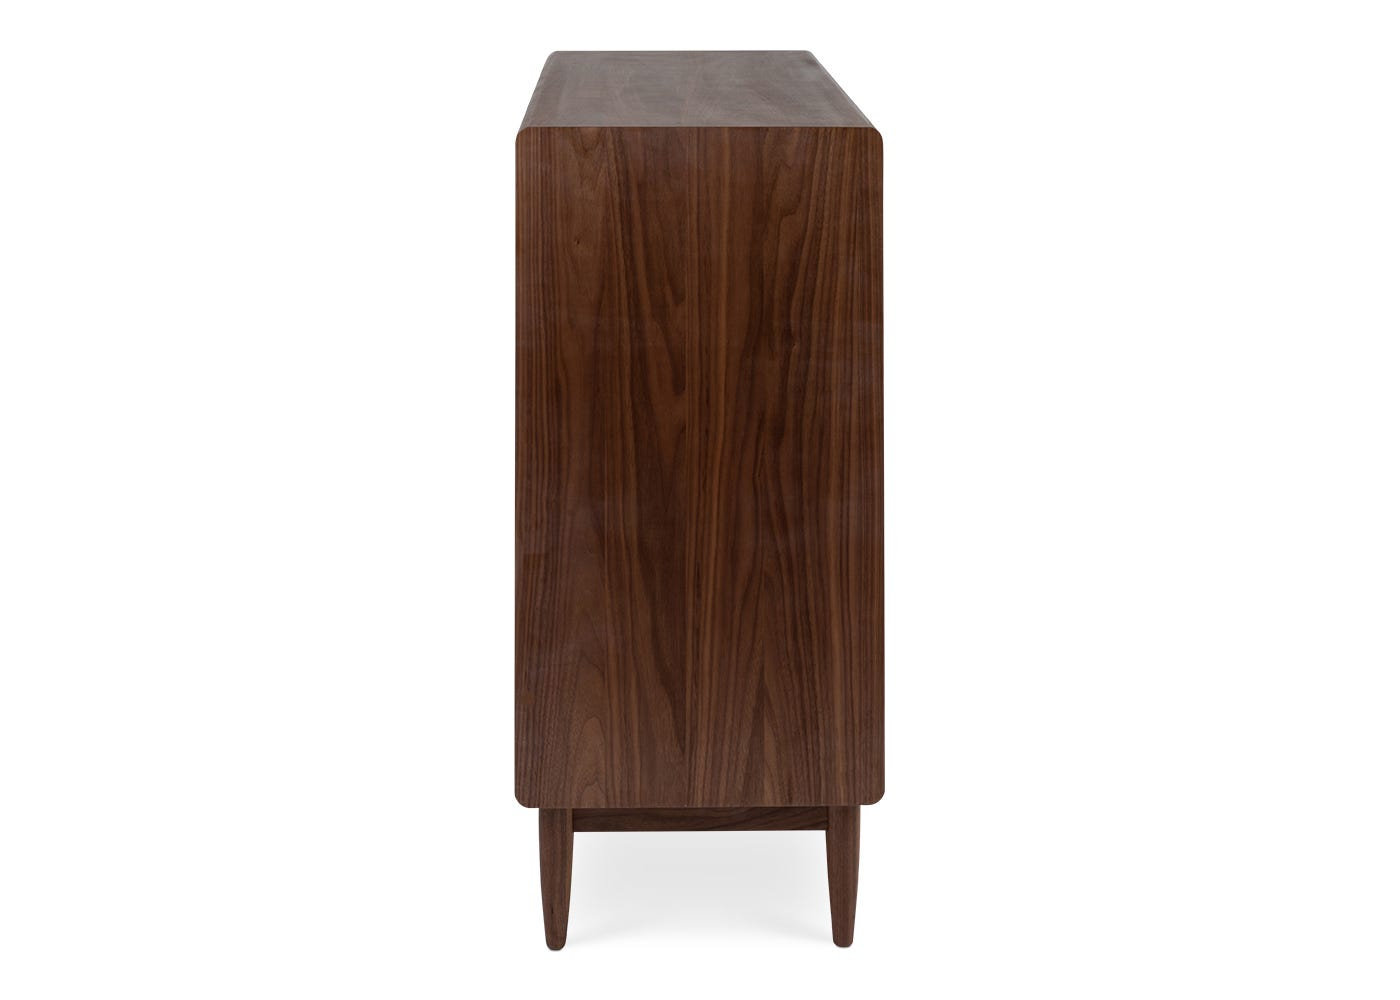 As shown: Amira 8 drawer wide chest walnut - Side profile.